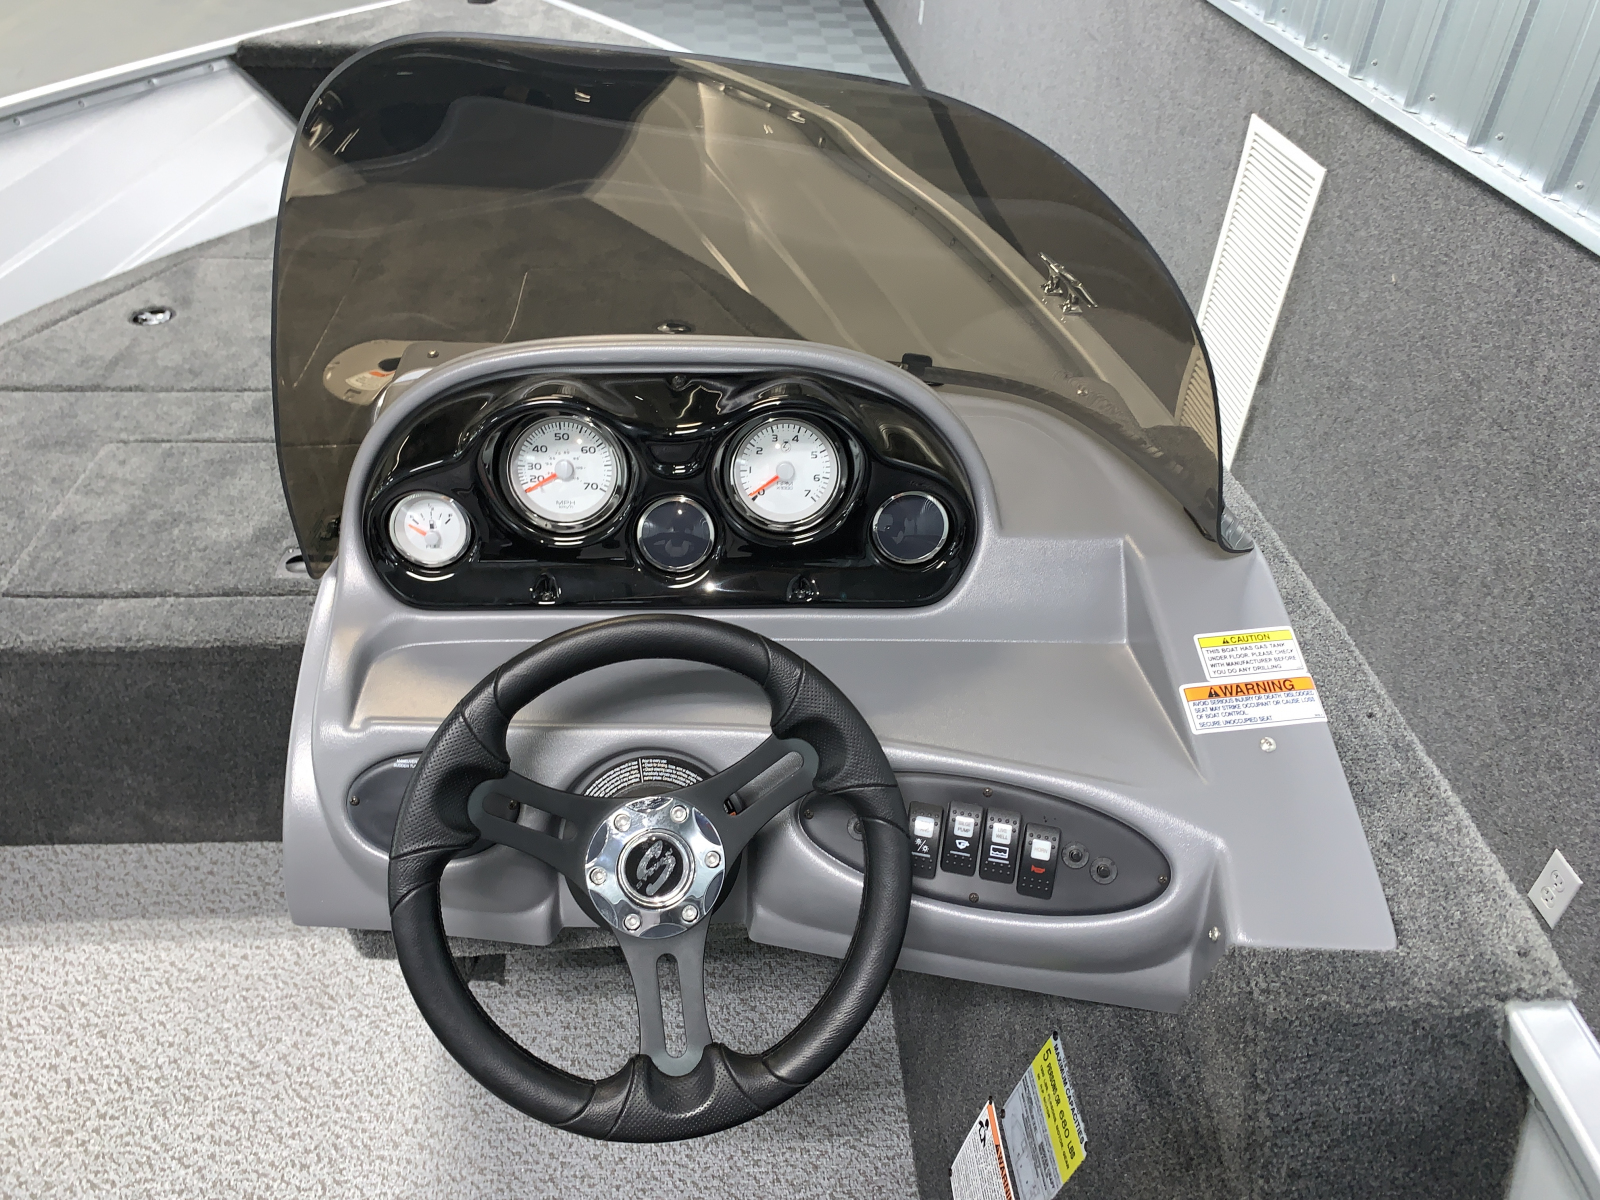 Helm of the 2022 Smoker Craft 161 Pro Angler Fishing Boat